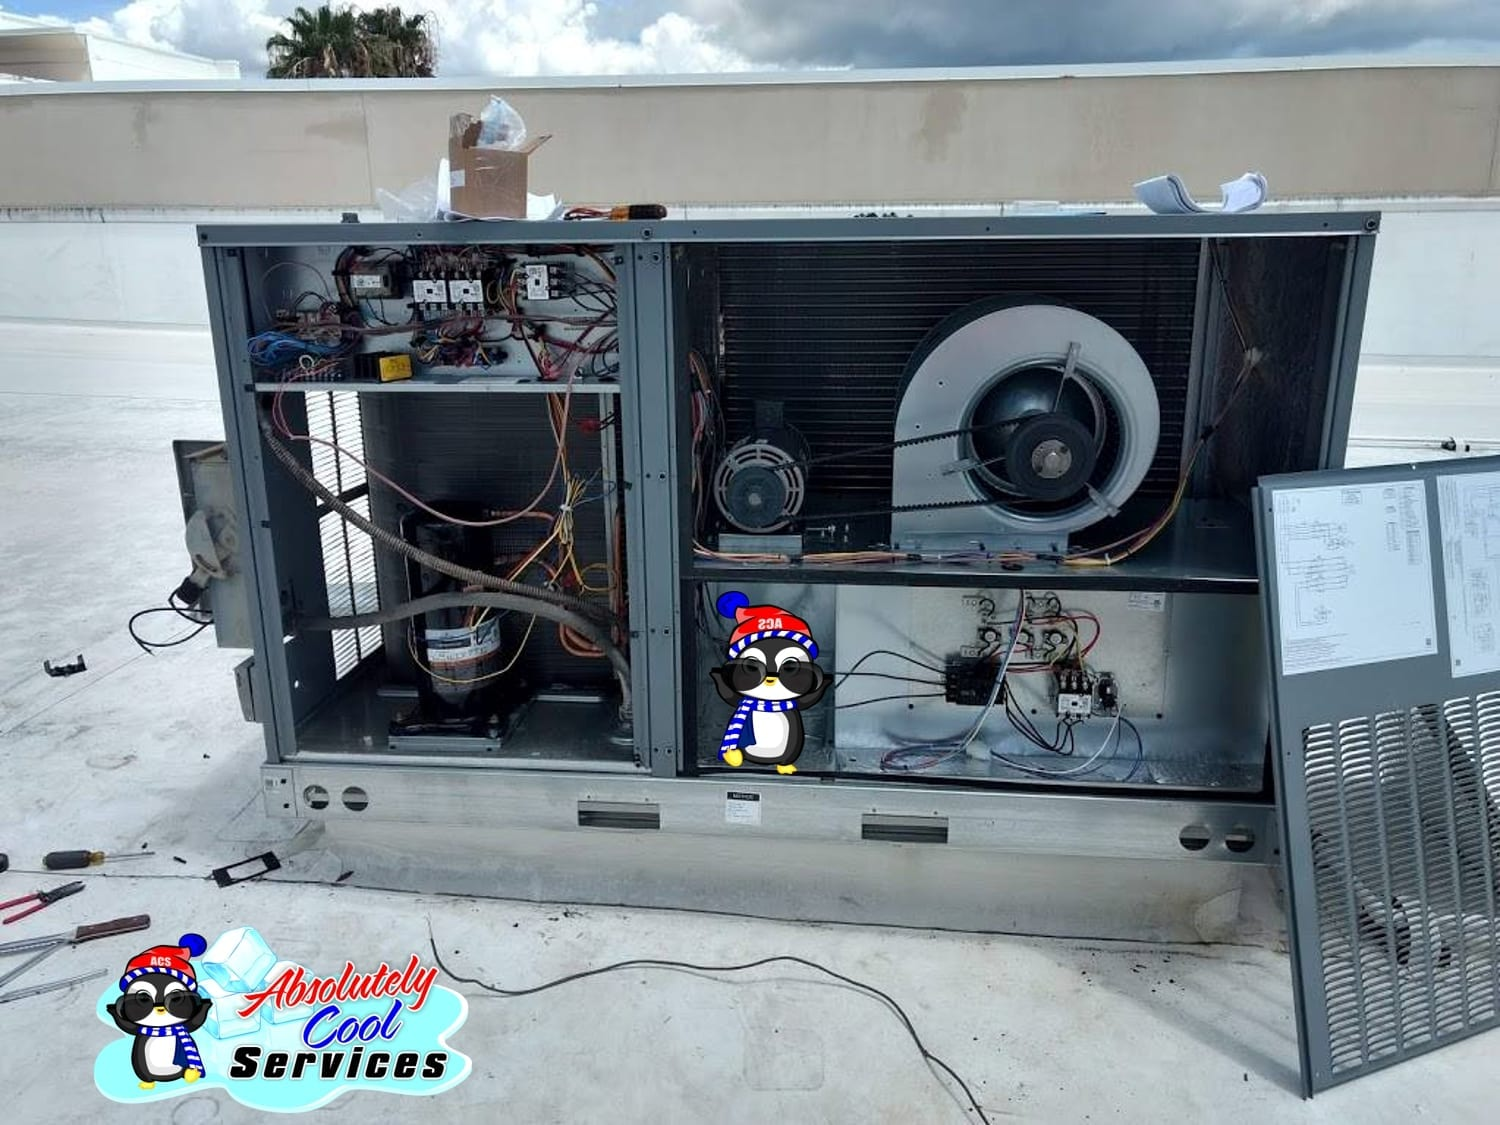 Roof Air Conditioning | HVAC Diagnosis Company near Royal Palm Beach